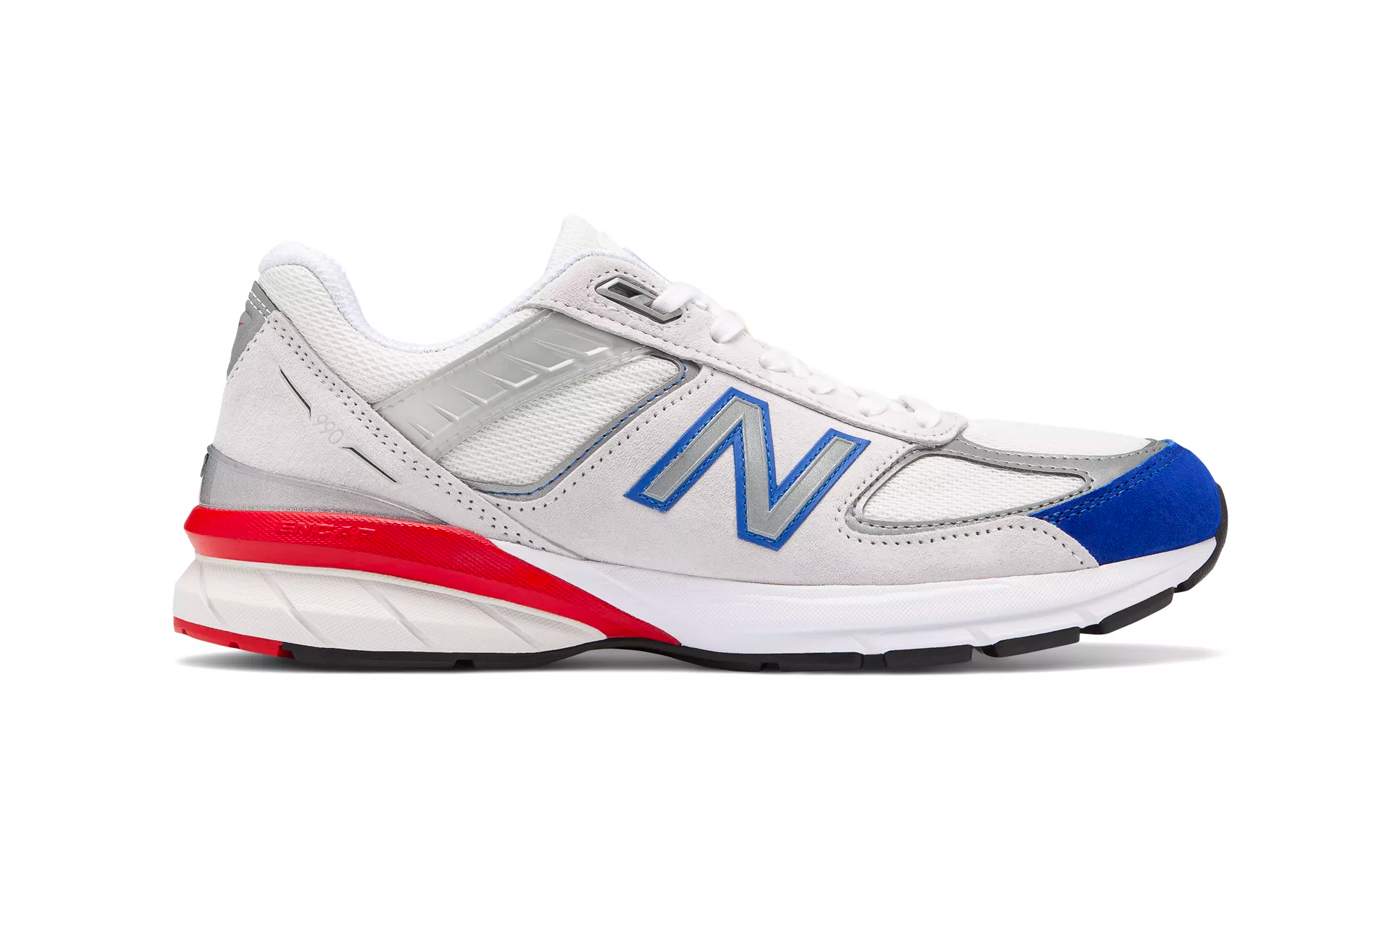 New Balance 990v5 Team Royal Team Red Release made in united states of america US red blue white flag fourth of july independence day